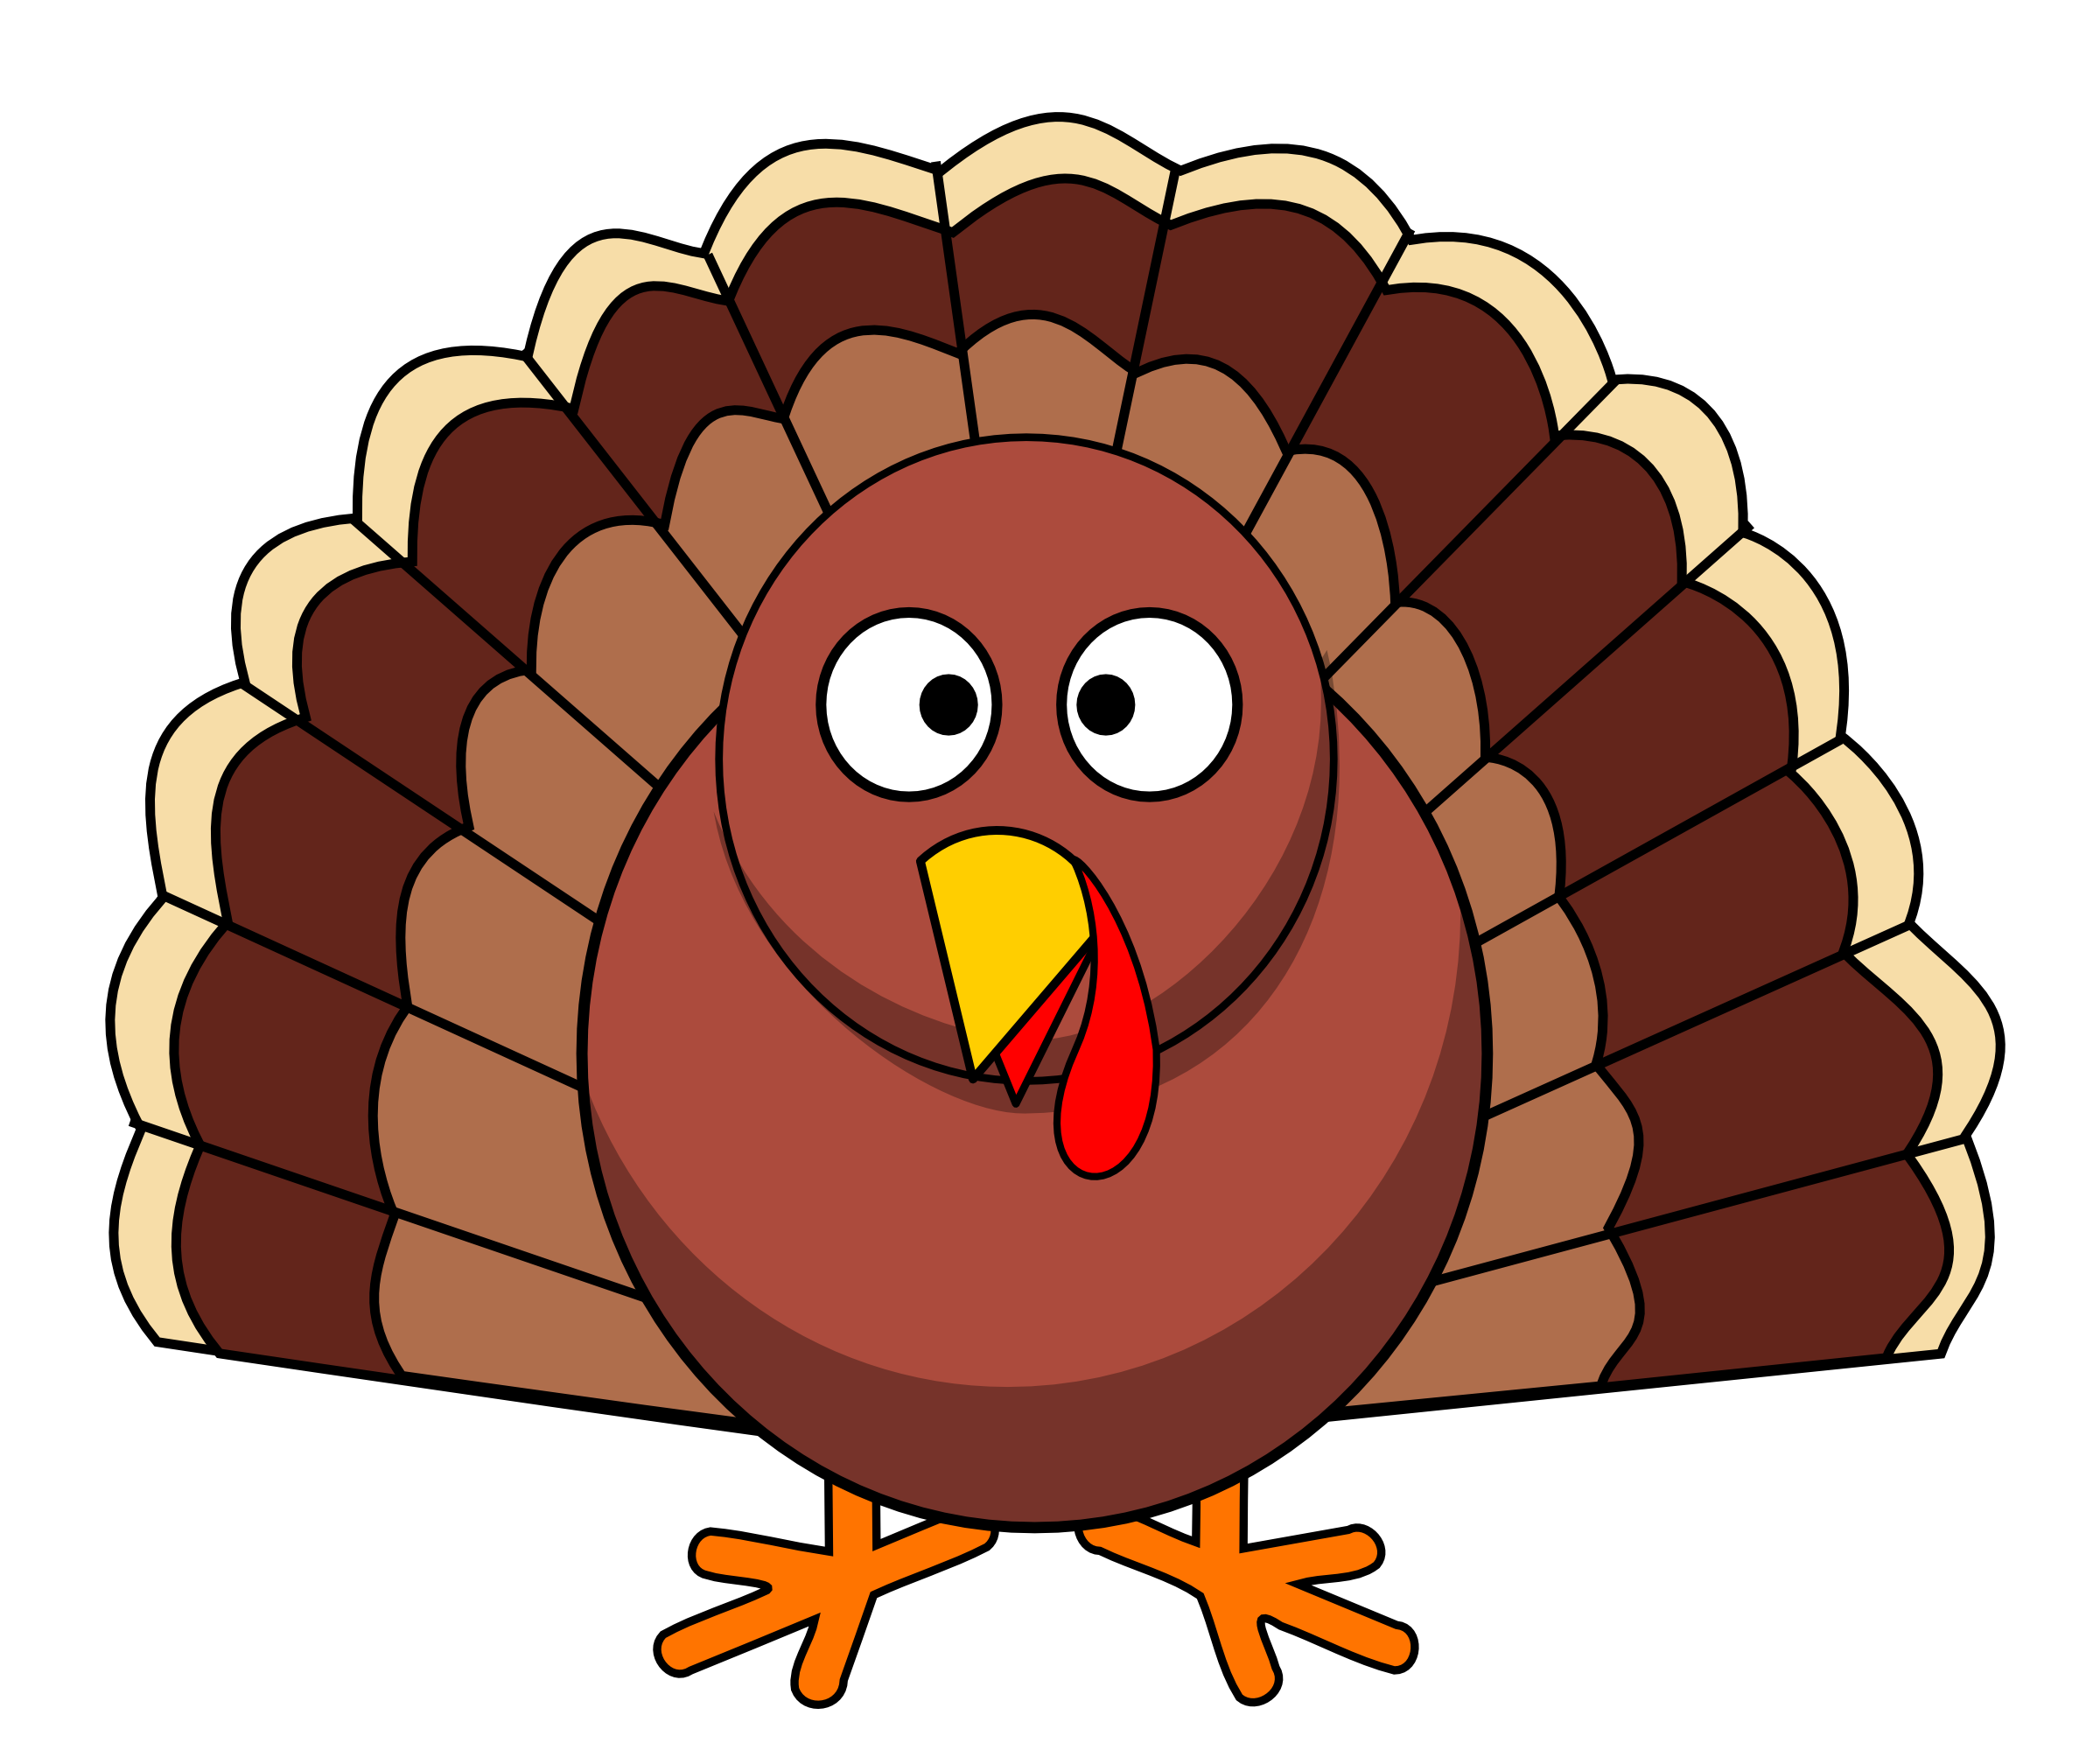 Free School Turkey Cliparts, Download Free Clip Art, Free.